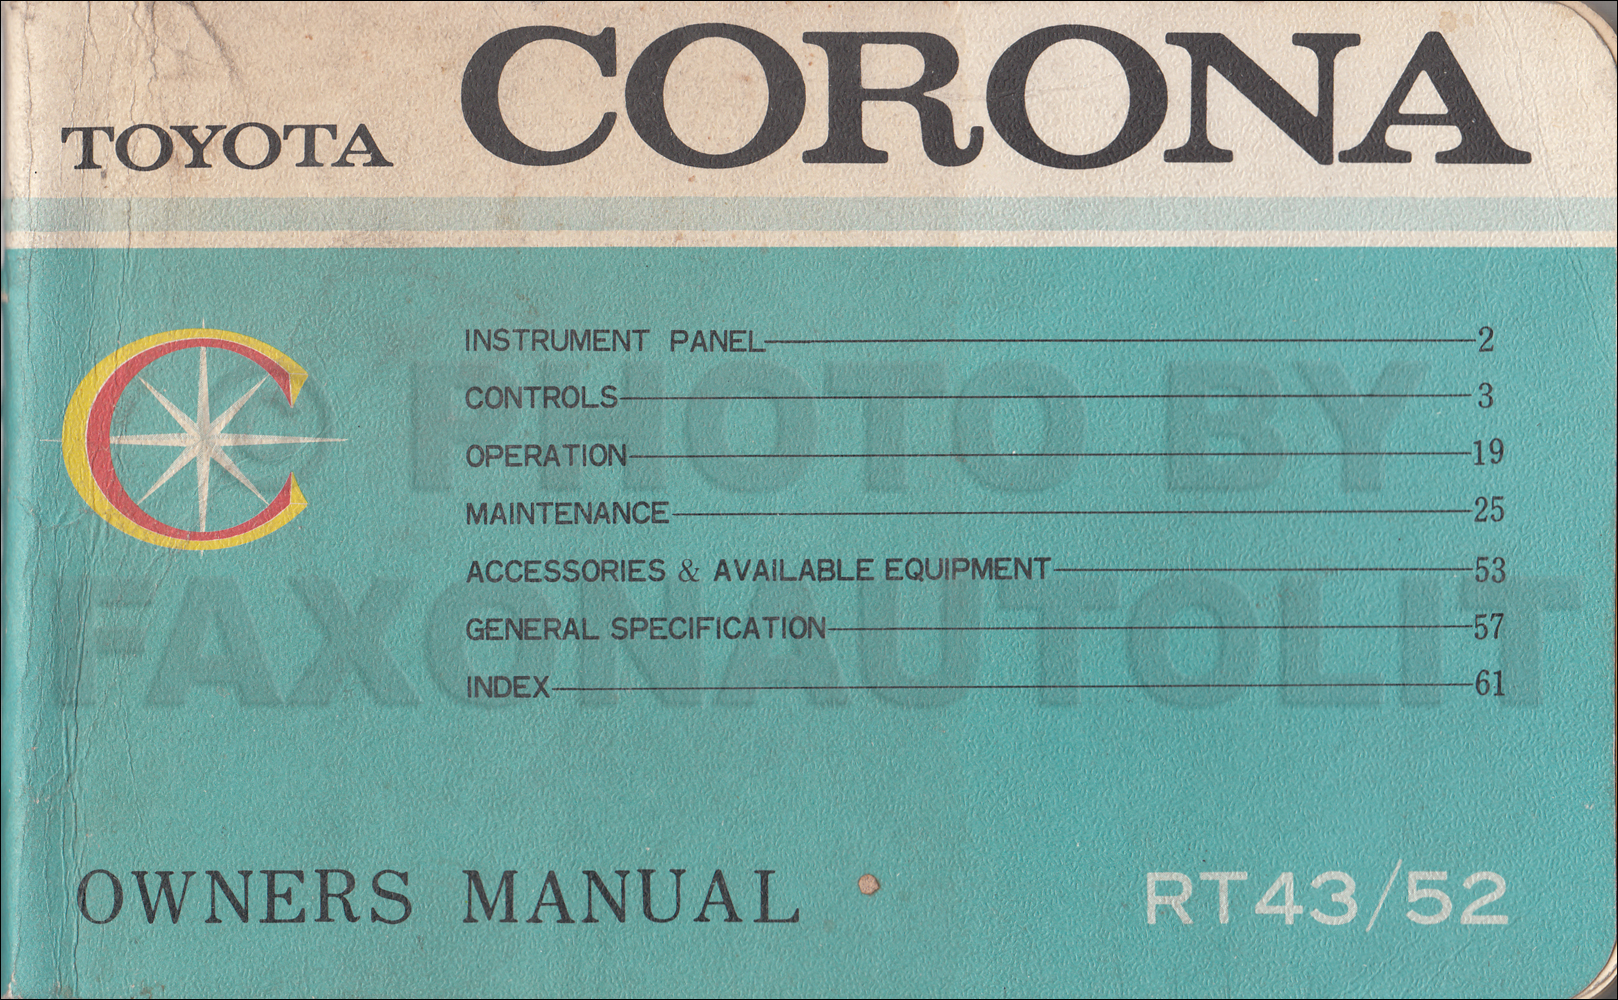 1968 Toyota Corona Owner's Manual Original